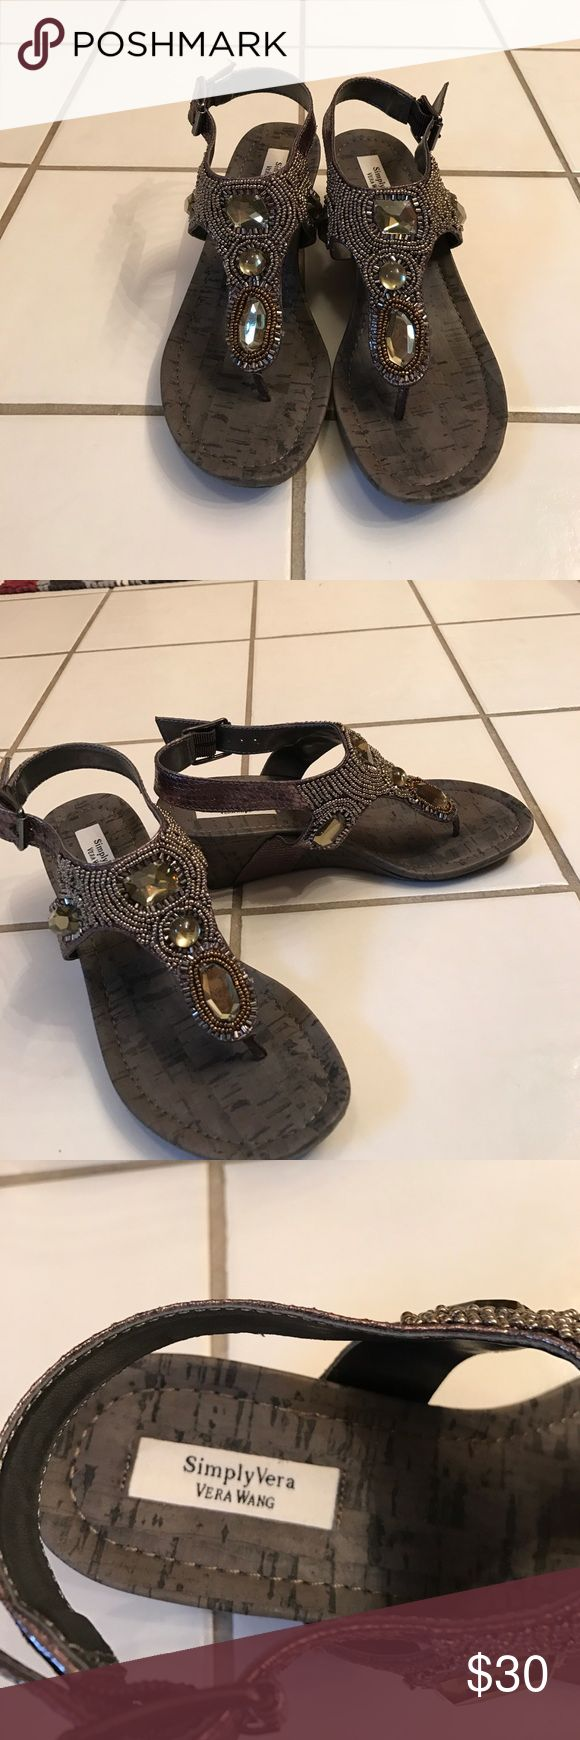 Vera Wang pewter sandals Beaded and stone detail. Worn once. No mArks or flaws. Vera Wang Shoes Sandals